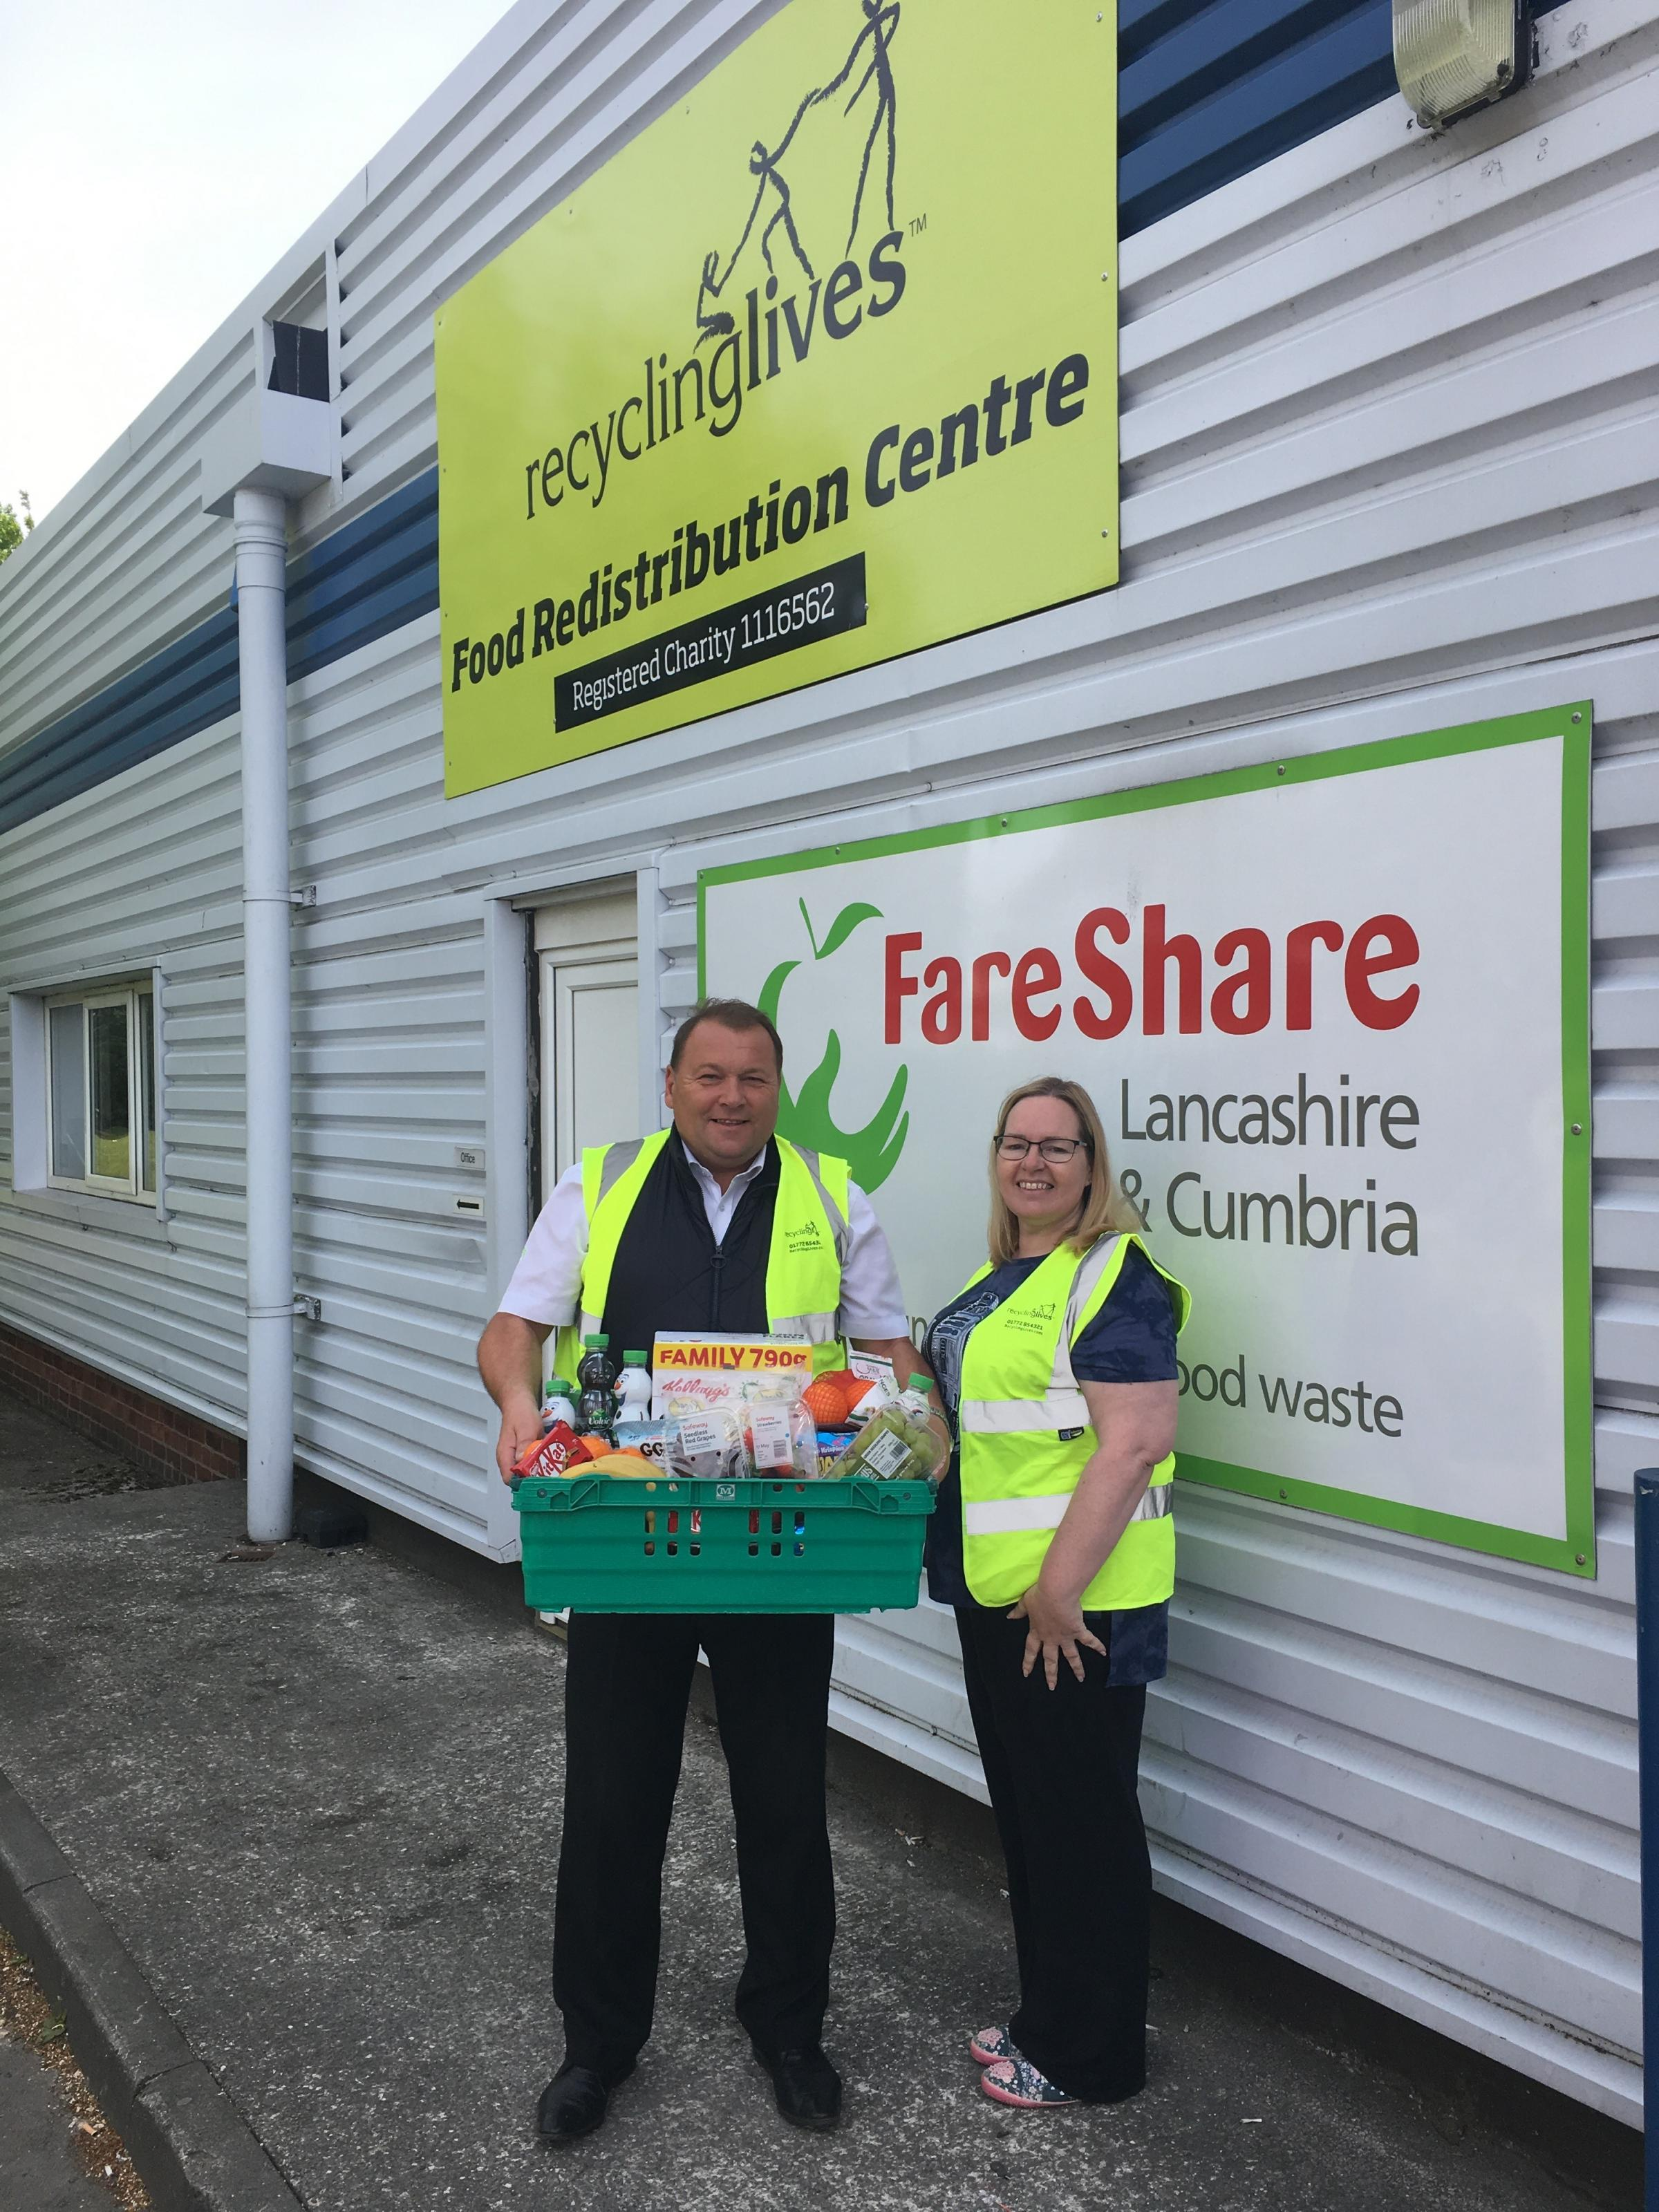 Lowercroft Primary School parent, Vicky Hilton, collects the hamper from head of charity Neil Flanagan at Recycling Lives' Food Redistribution Centre